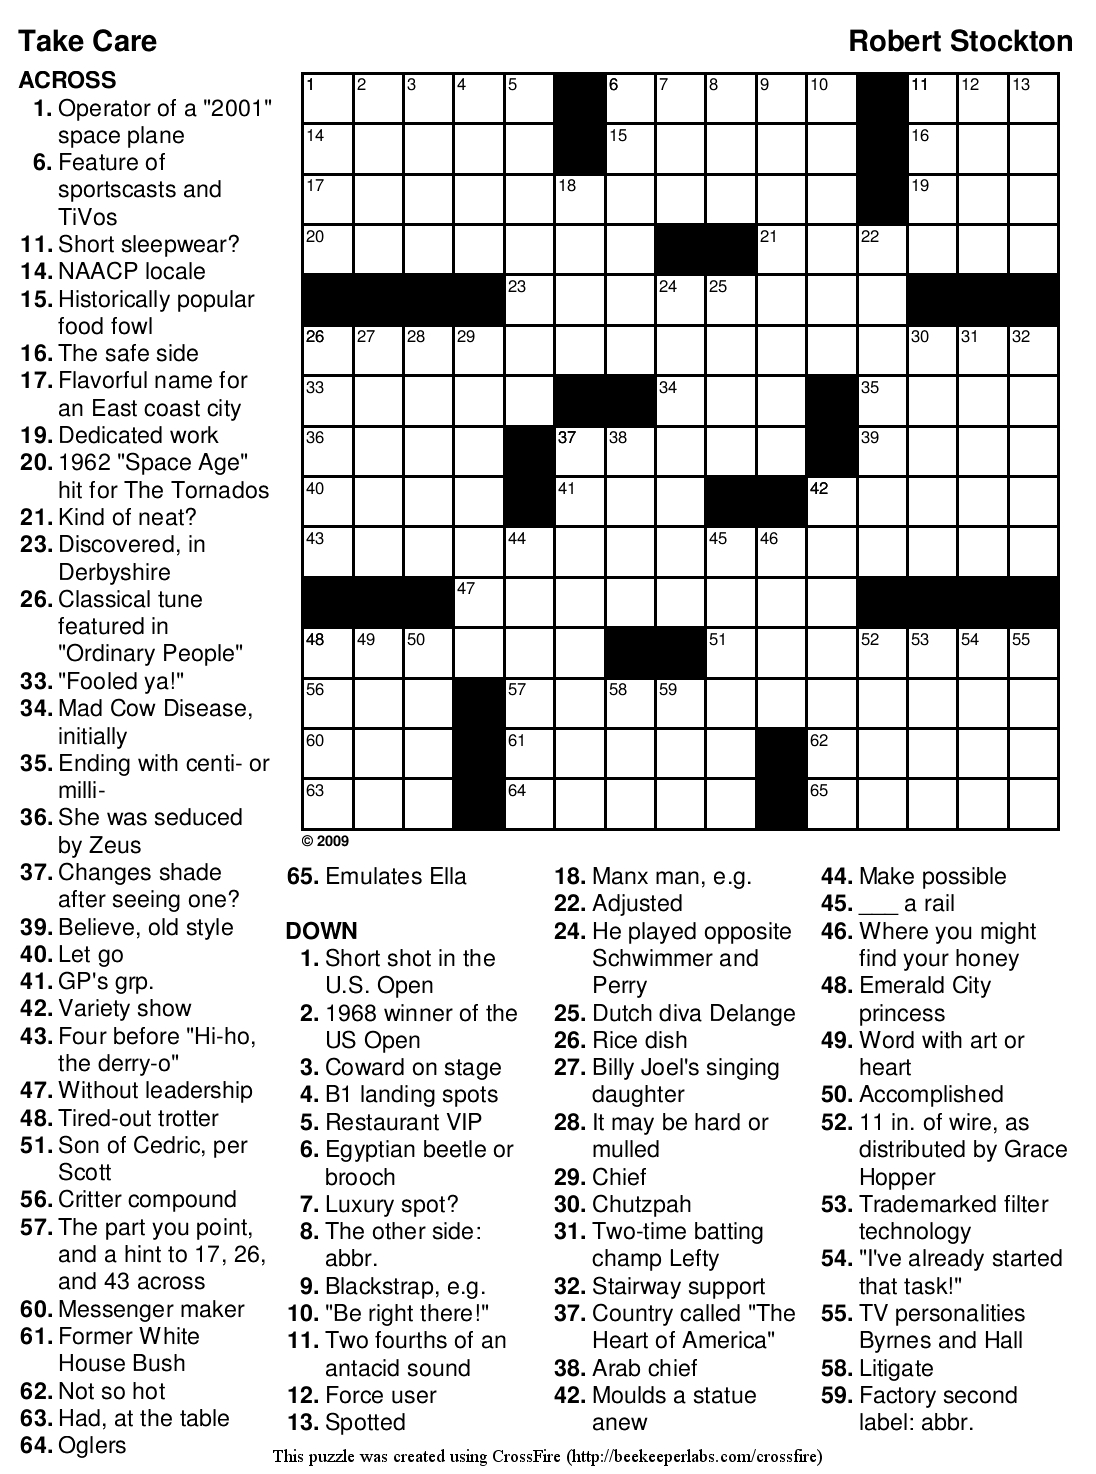 Printable Easy Sports Crossword Puzzles | Download Them Or Print - Printable Crossword Puzzles About Sports